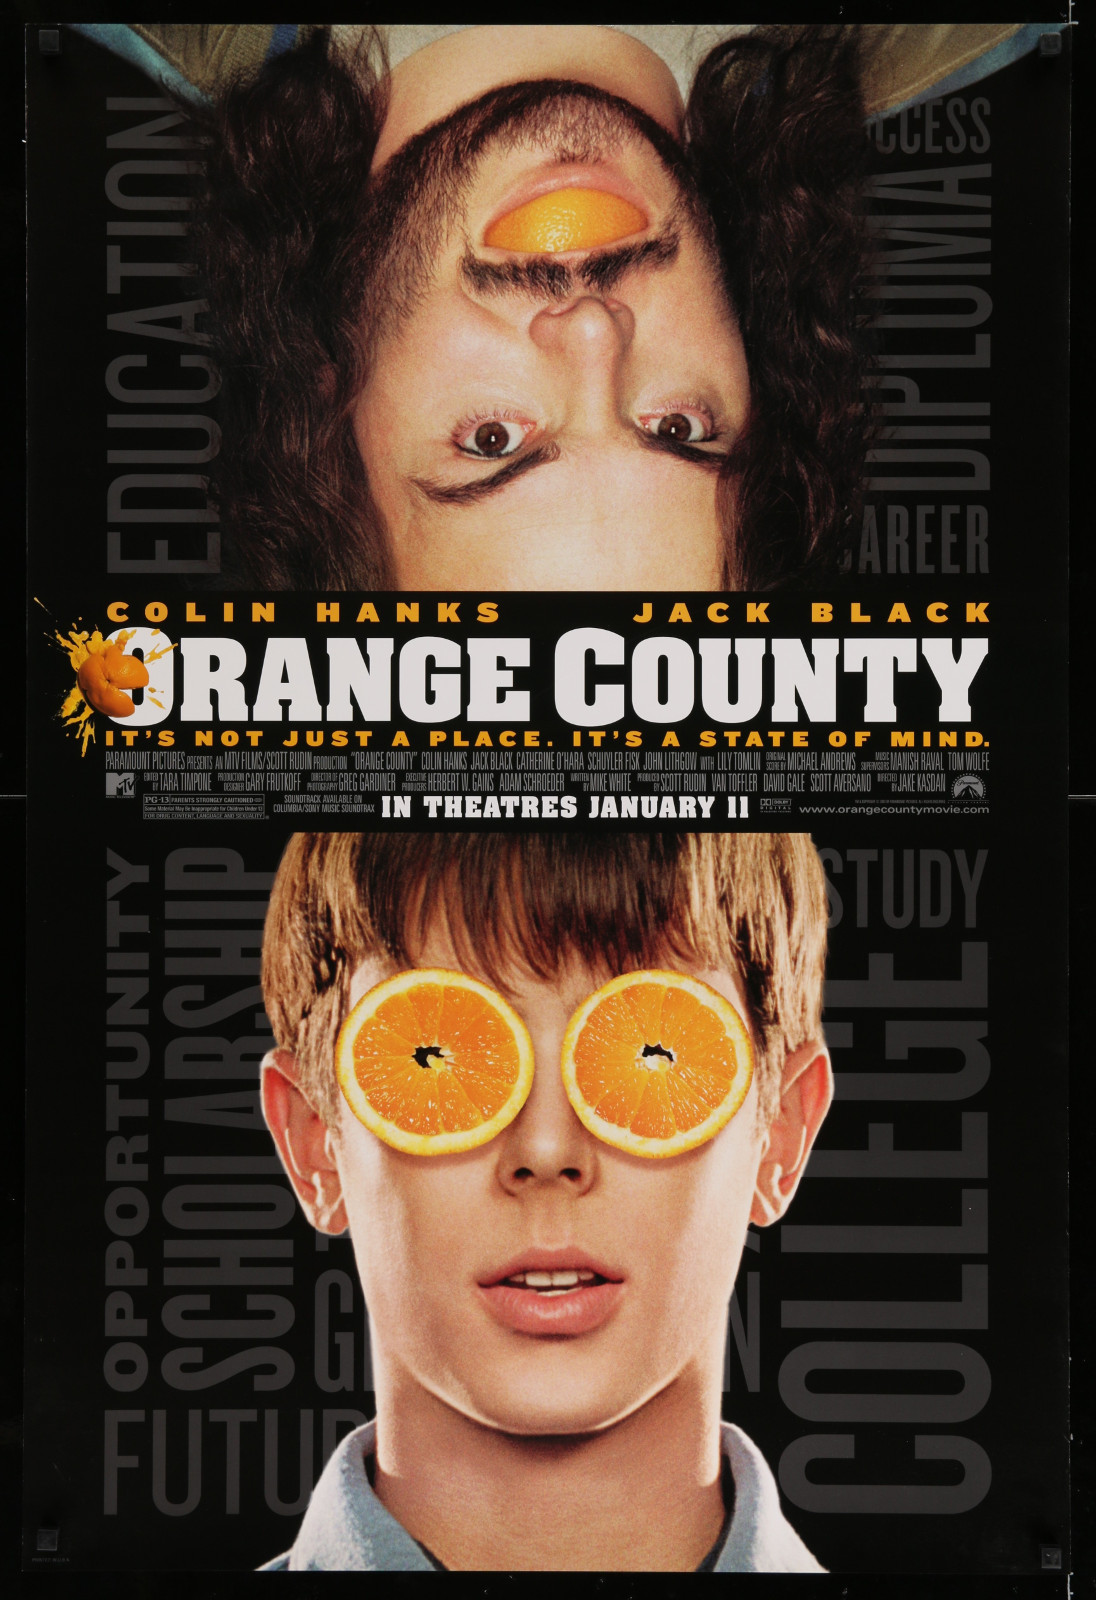 Orange County 2A446 A Part Of A Lot 17 Unfolded Mostly Double-Sided 27X40 One-Sheets '90S-00S Great Movie Images!